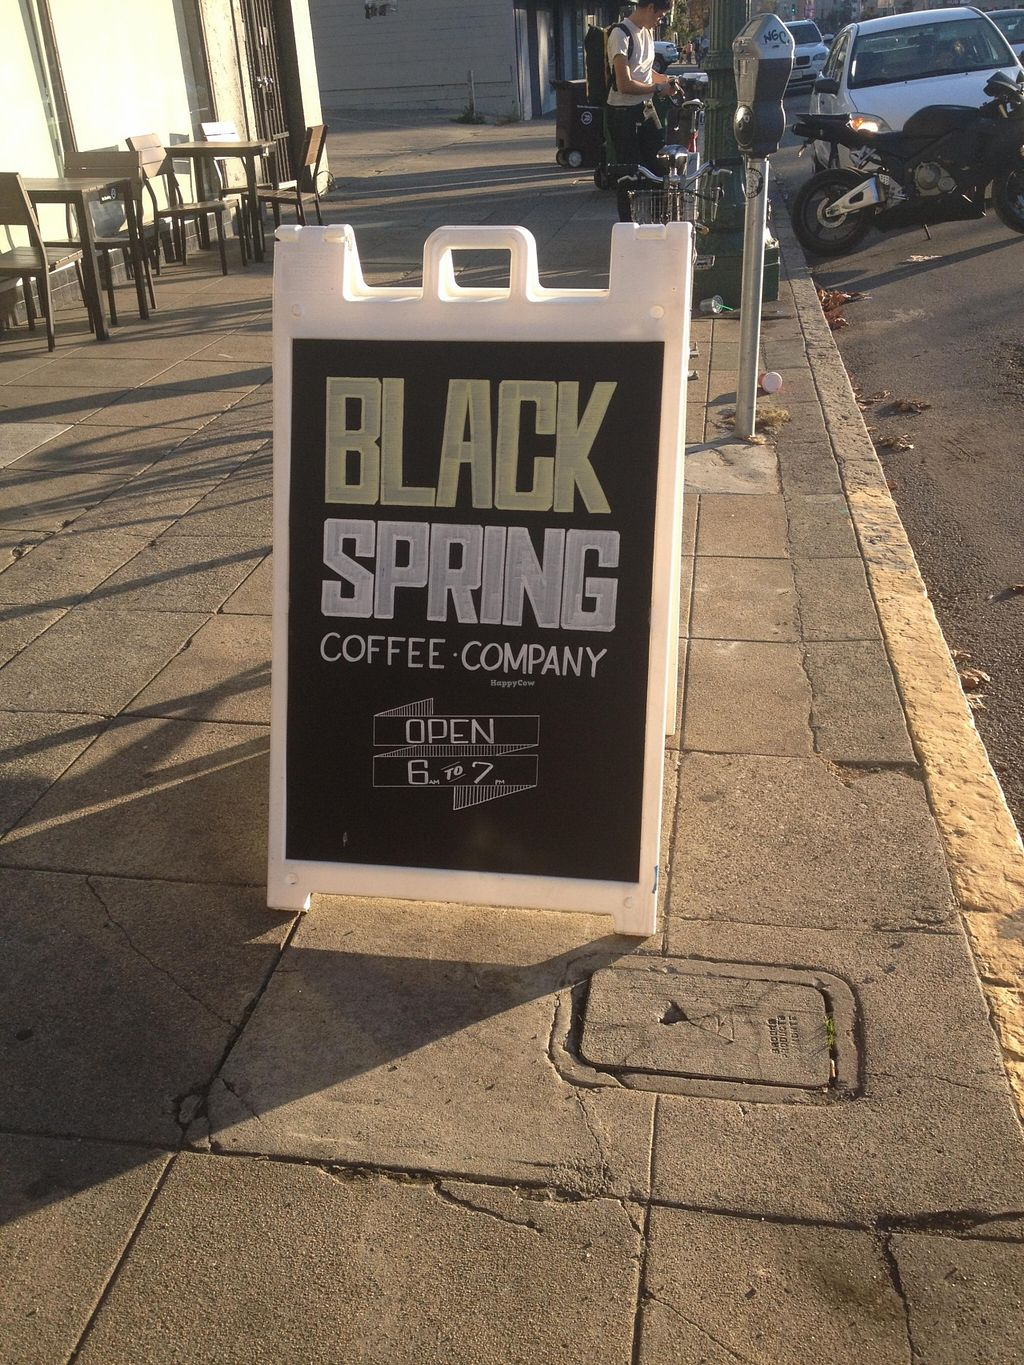 "Photo of Black Spring Coffee Company  by <a href=""/members/profile/vegan_ryan"">vegan_ryan</a> <br/>Sidewalk sign <br/> December 12, 2015  - <a href='/contact/abuse/image/48736/128031'>Report</a>"